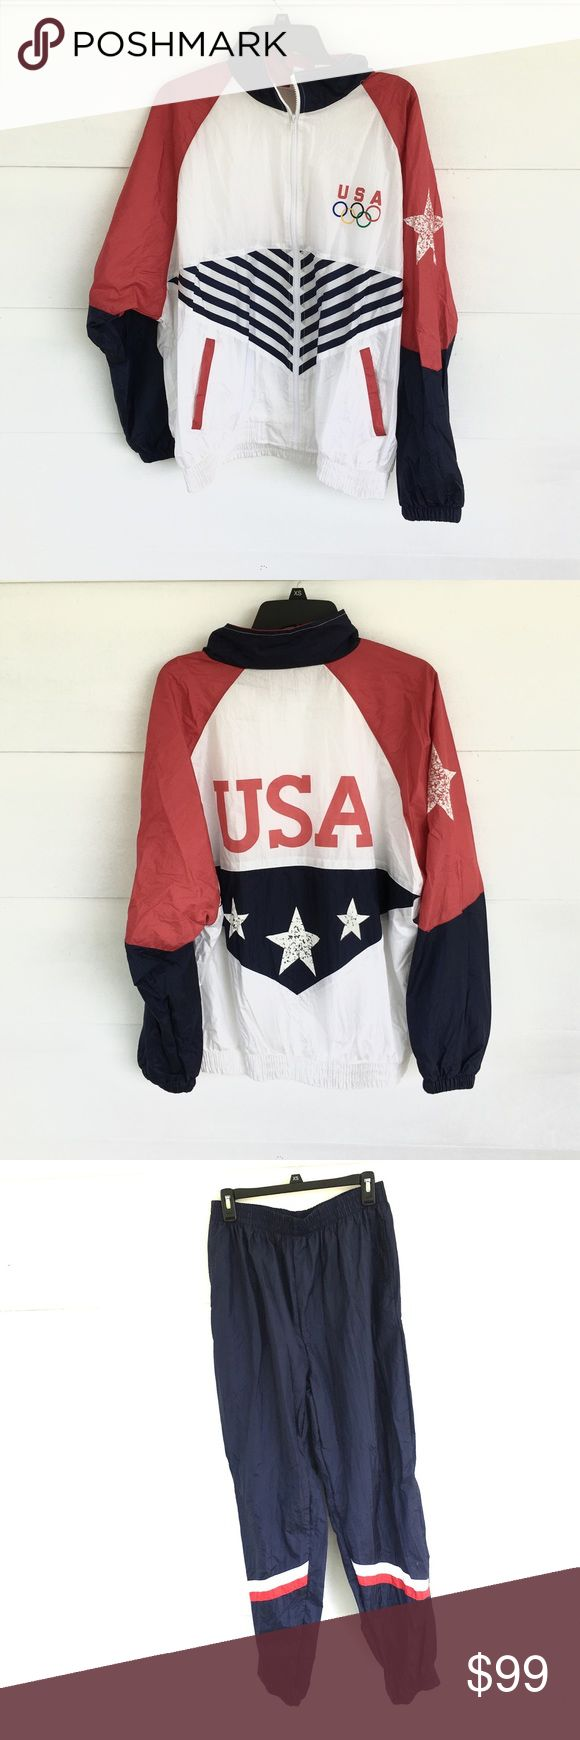 Team USA Olympic men's track suit set Jacket and pants. Vintage. Great condition Jackets & Coats Performance Jackets